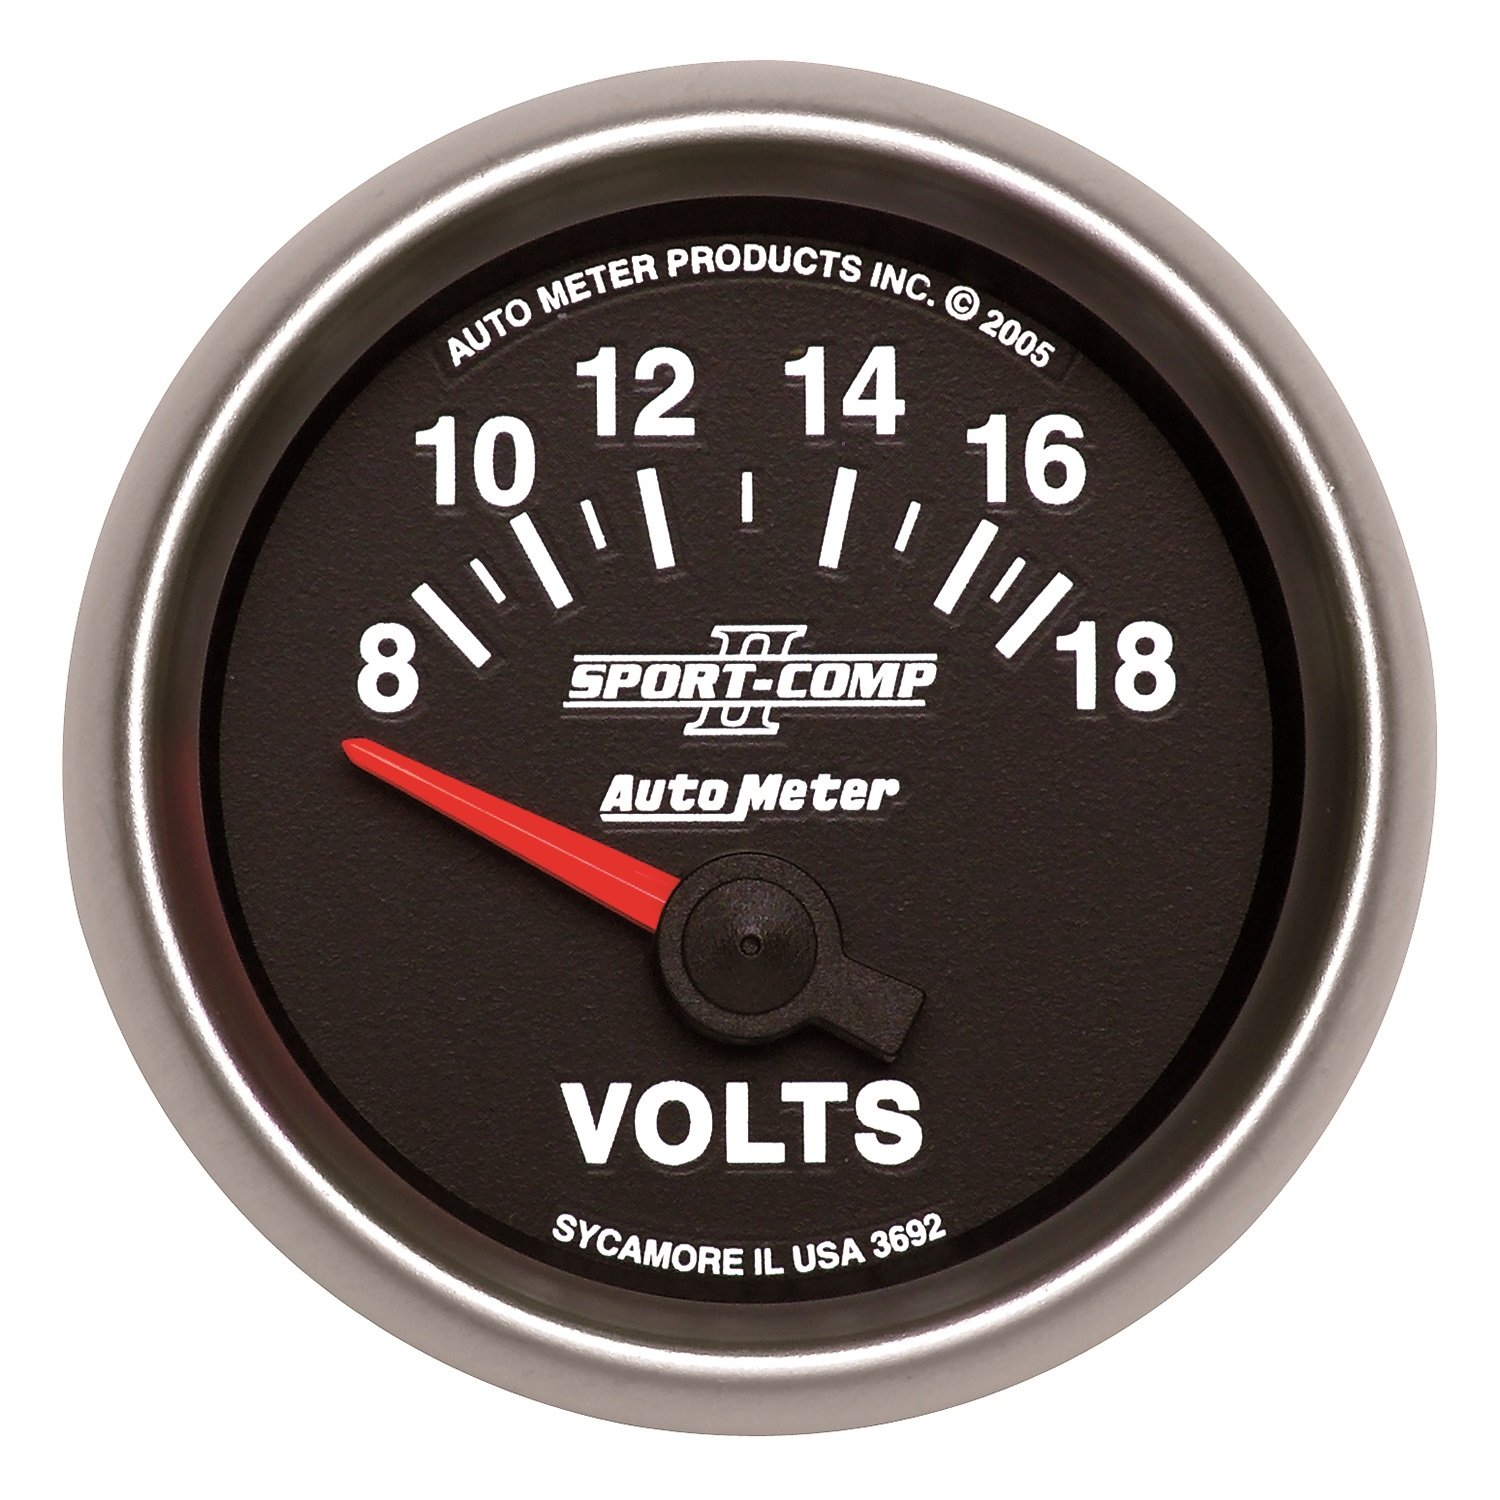 Auto Meter 3692 Sport-Comp II 2-1/16'' 8-18V Short Sweep Electric Voltmeter by AUTO METER